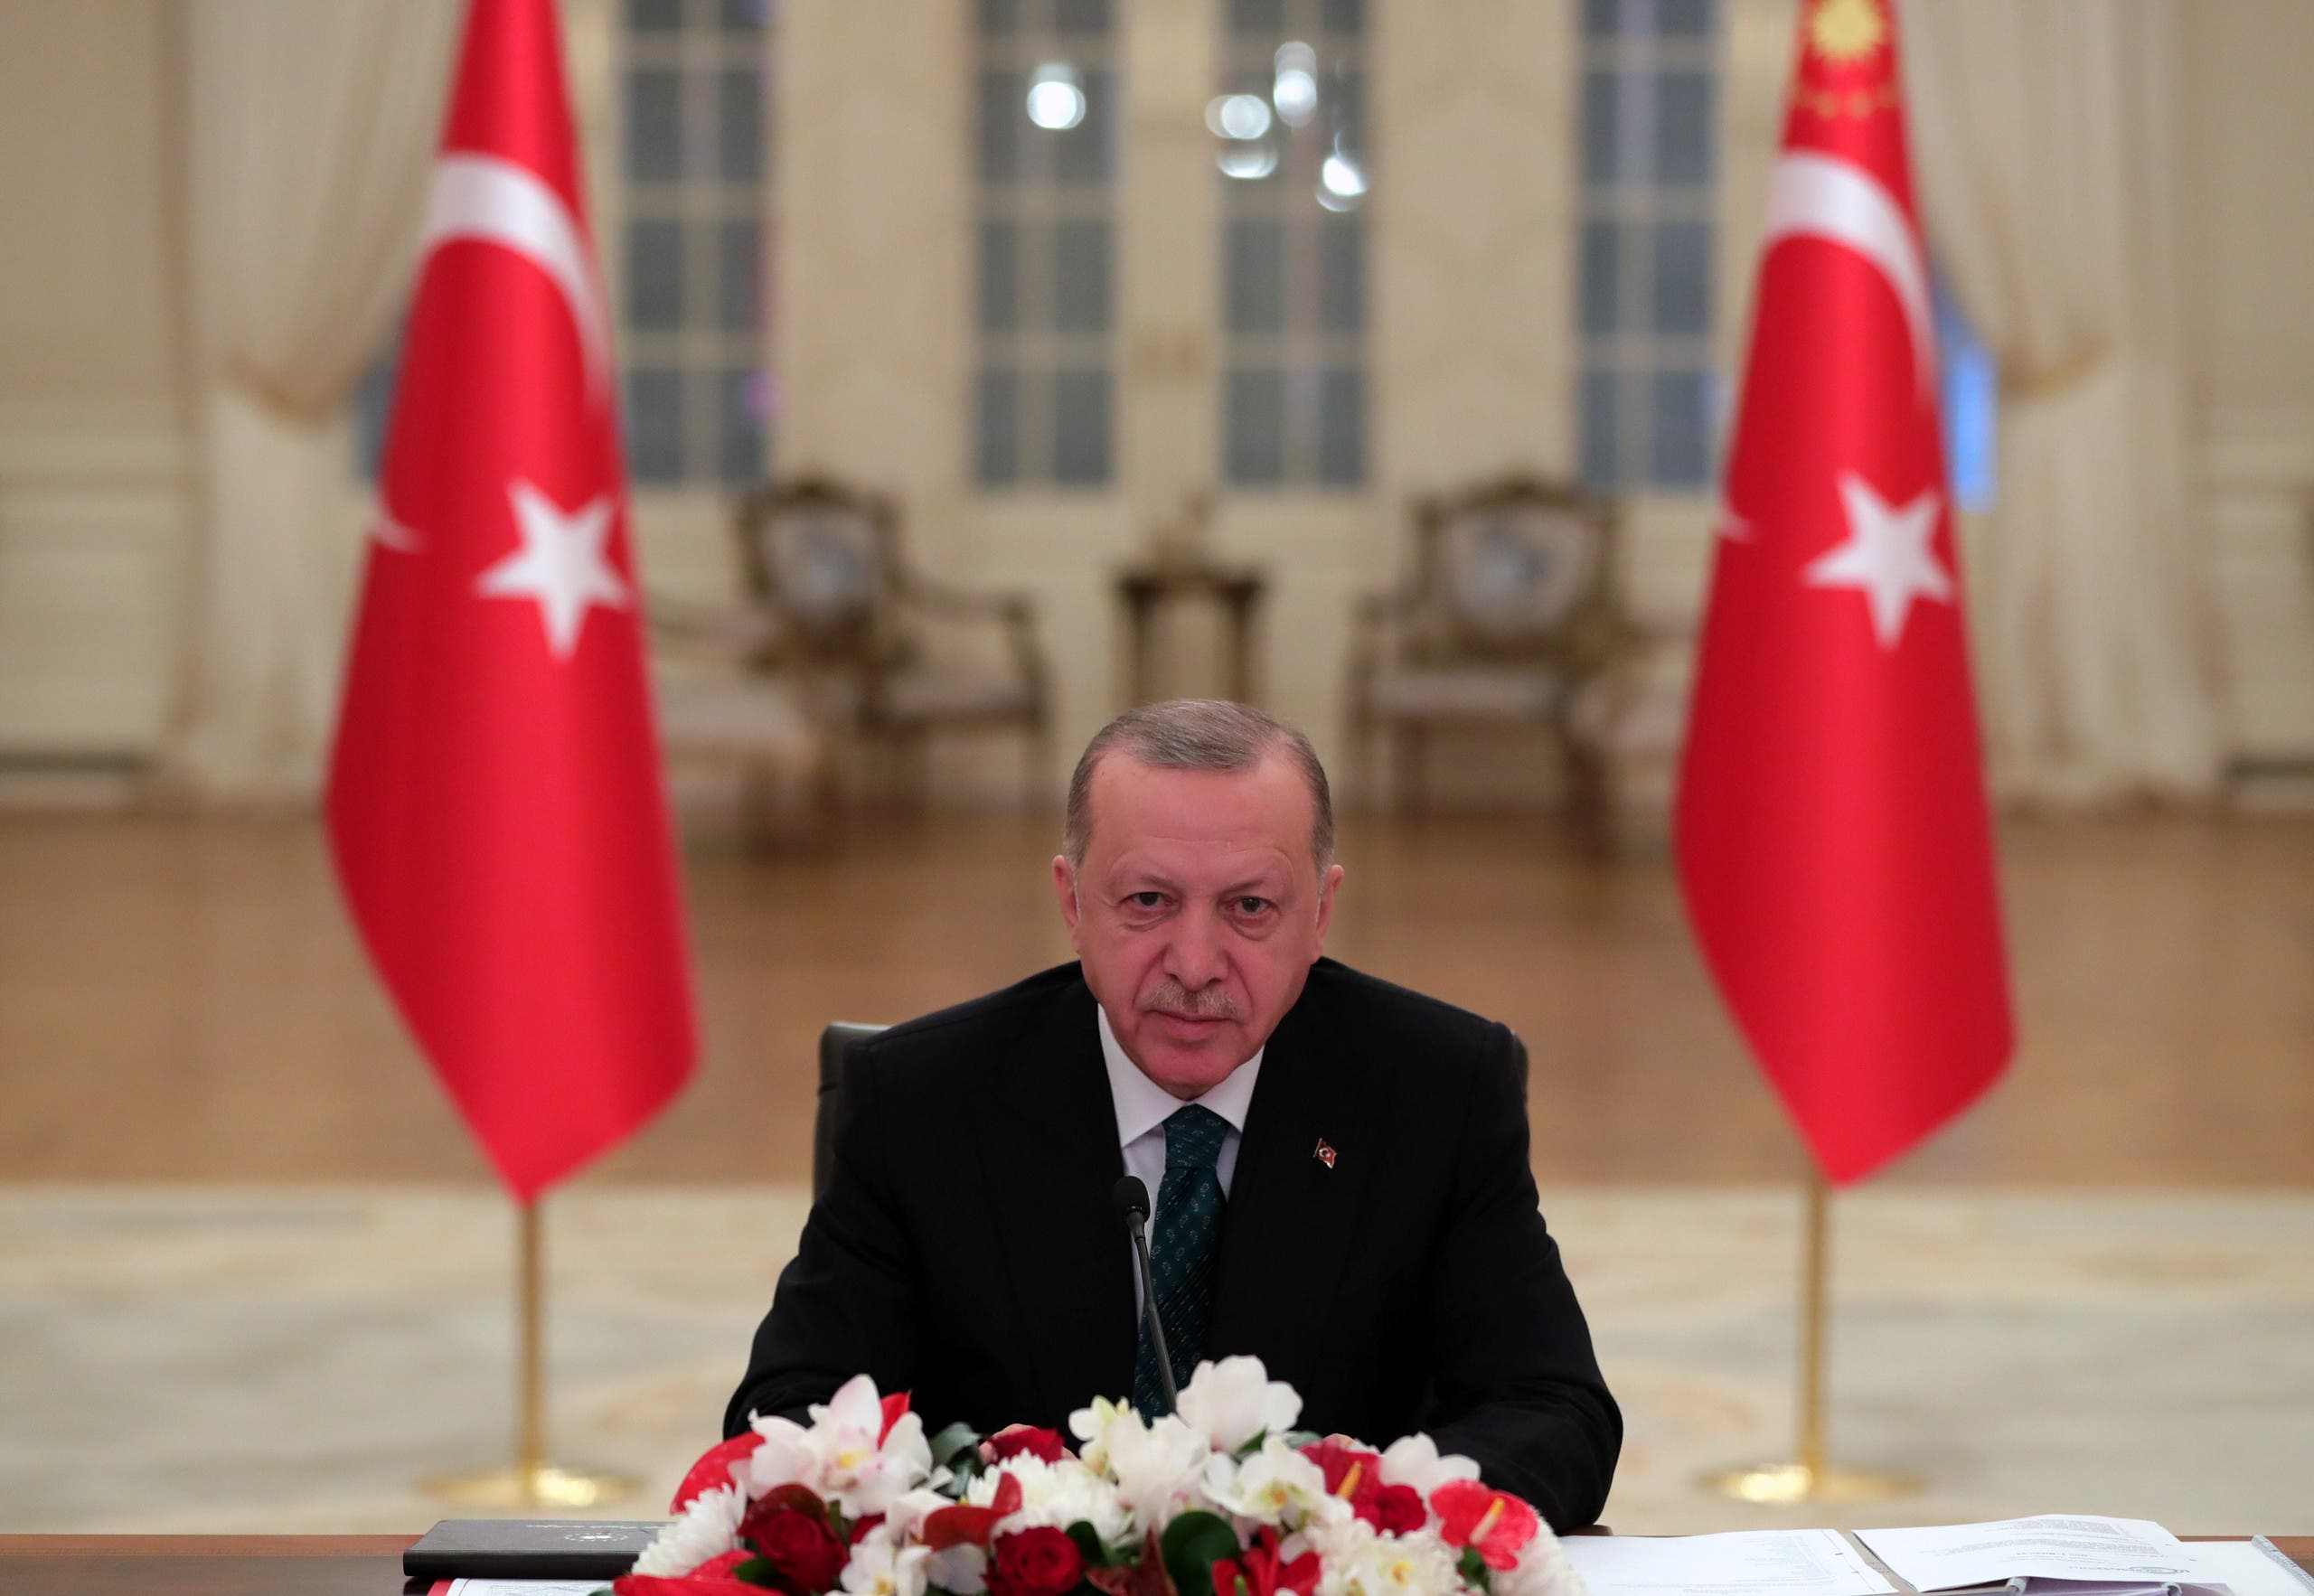 Turkish President Tayyip Erdogan attends a Climate Summit video conference at the Presidential Palace in Ankara, Turkey, April 22, 2021. (File photo: Reuters)